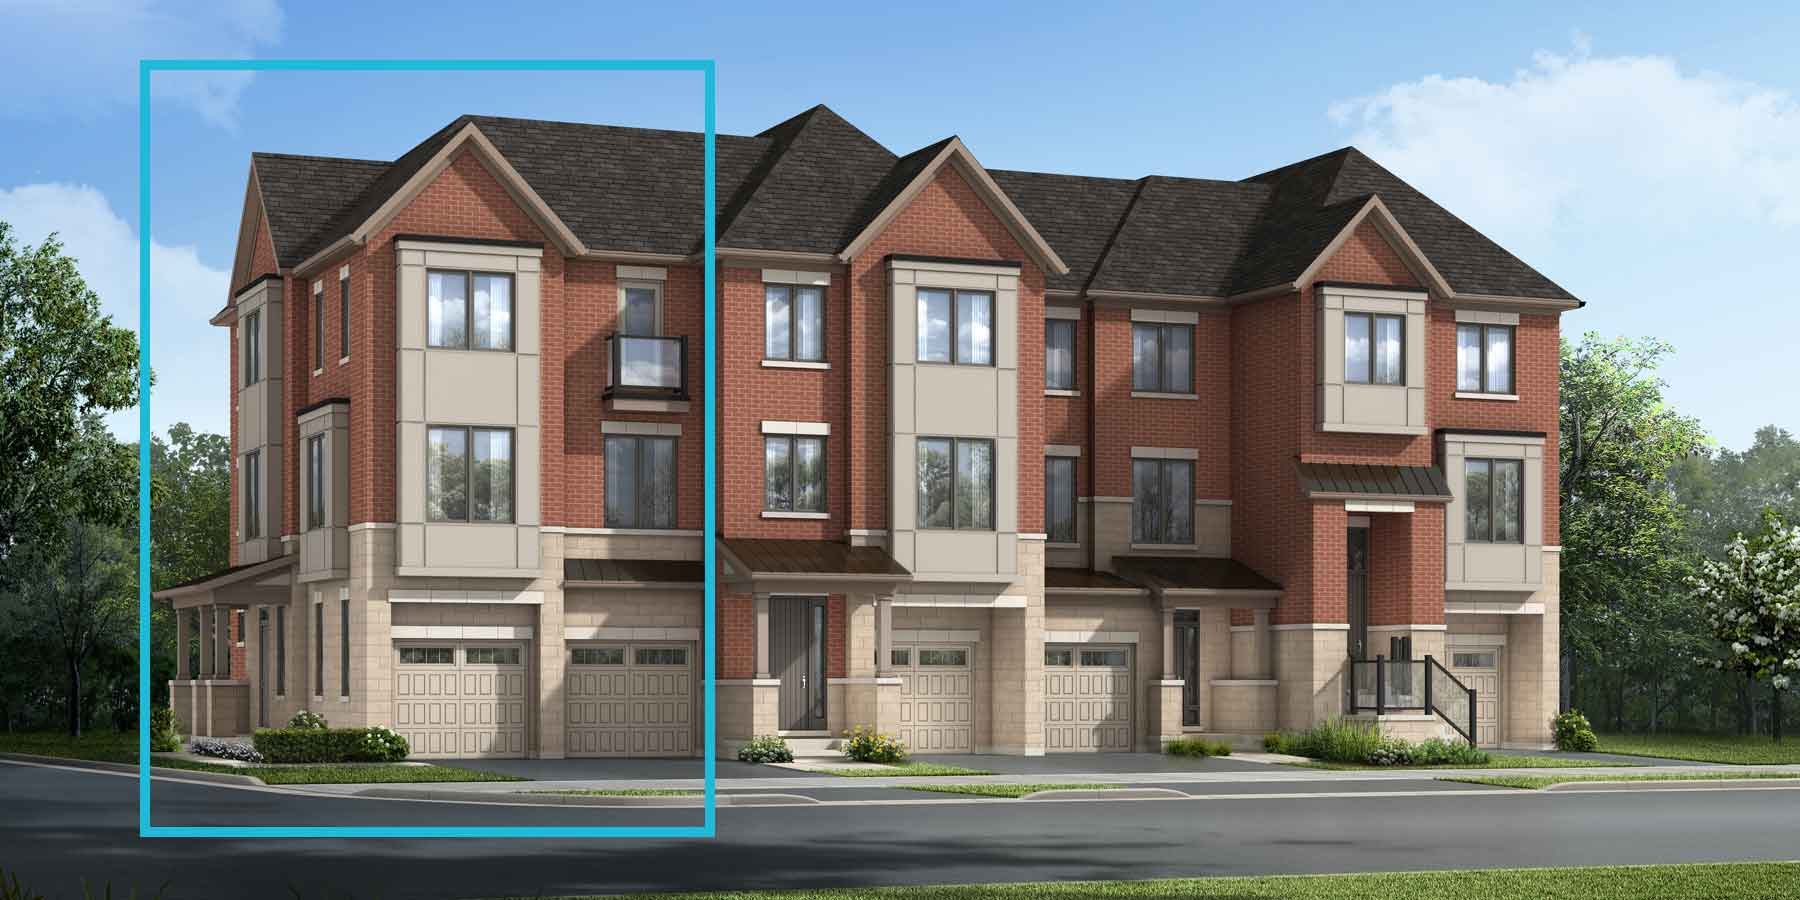 Stonebridge Corner Plan TownHomes at The Nine in Mississauga Ontario by Mattamy Homes